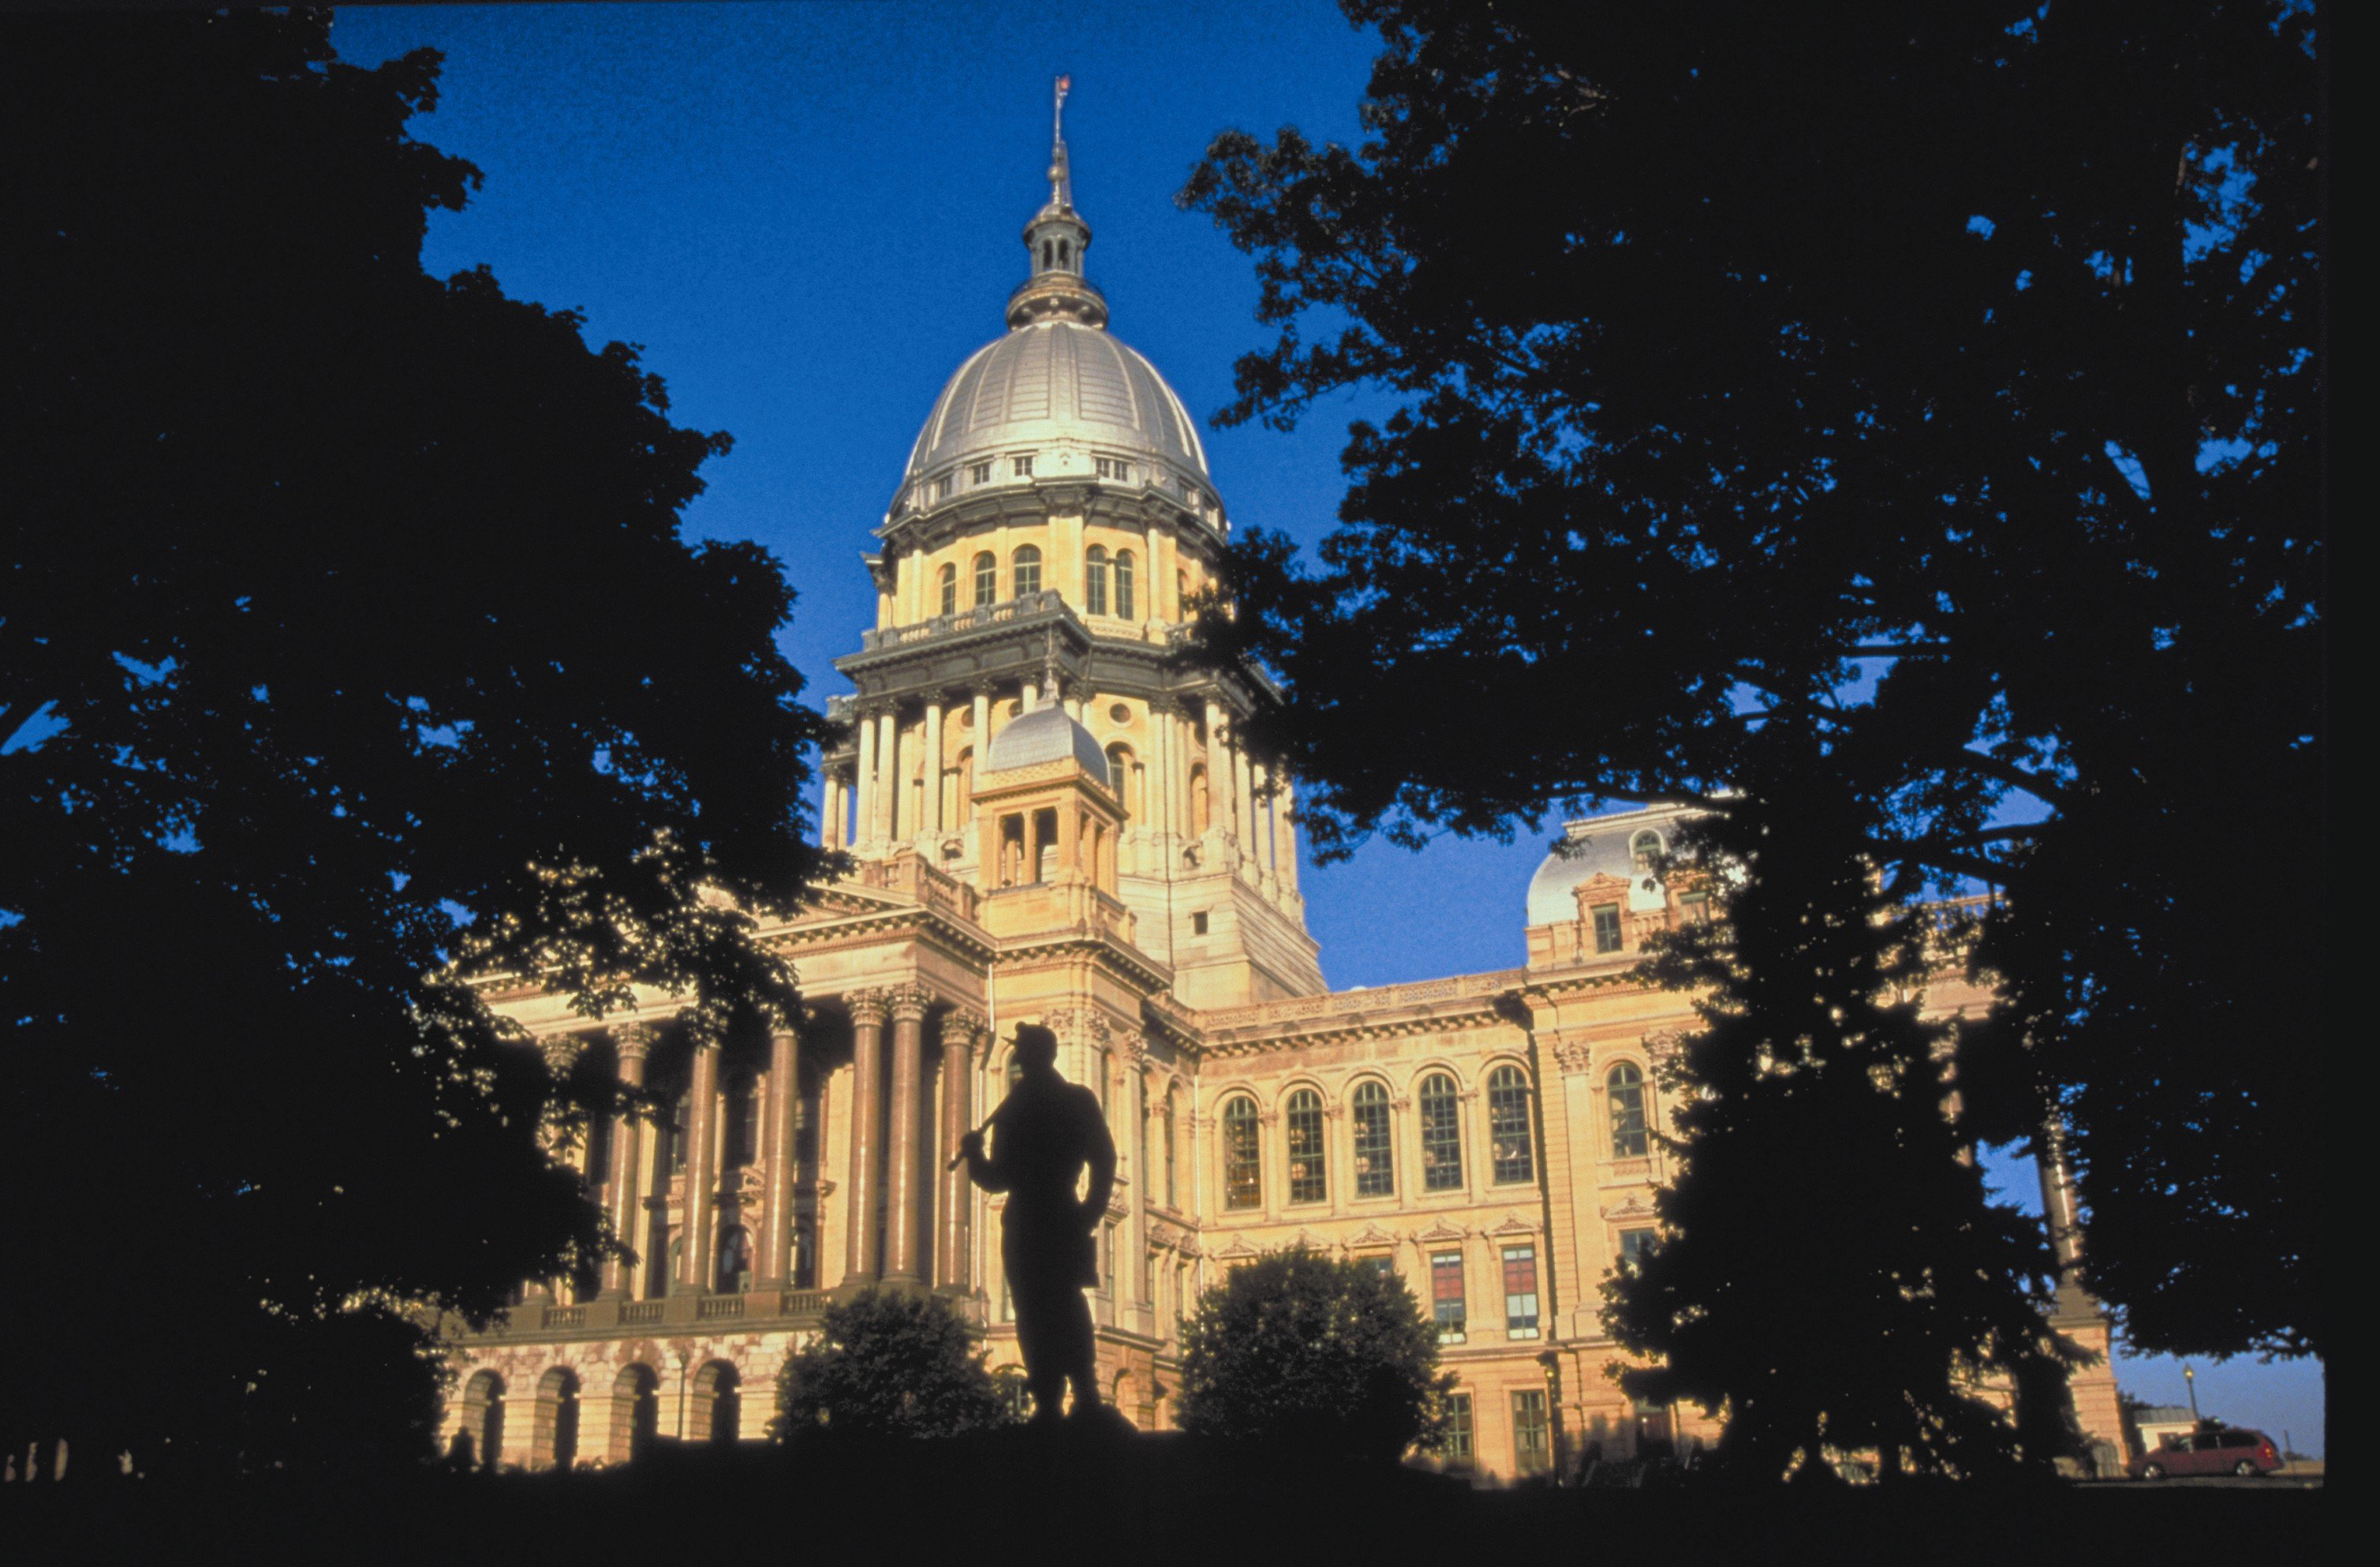 When you explore Springfield, IL be sure to view the state capitol